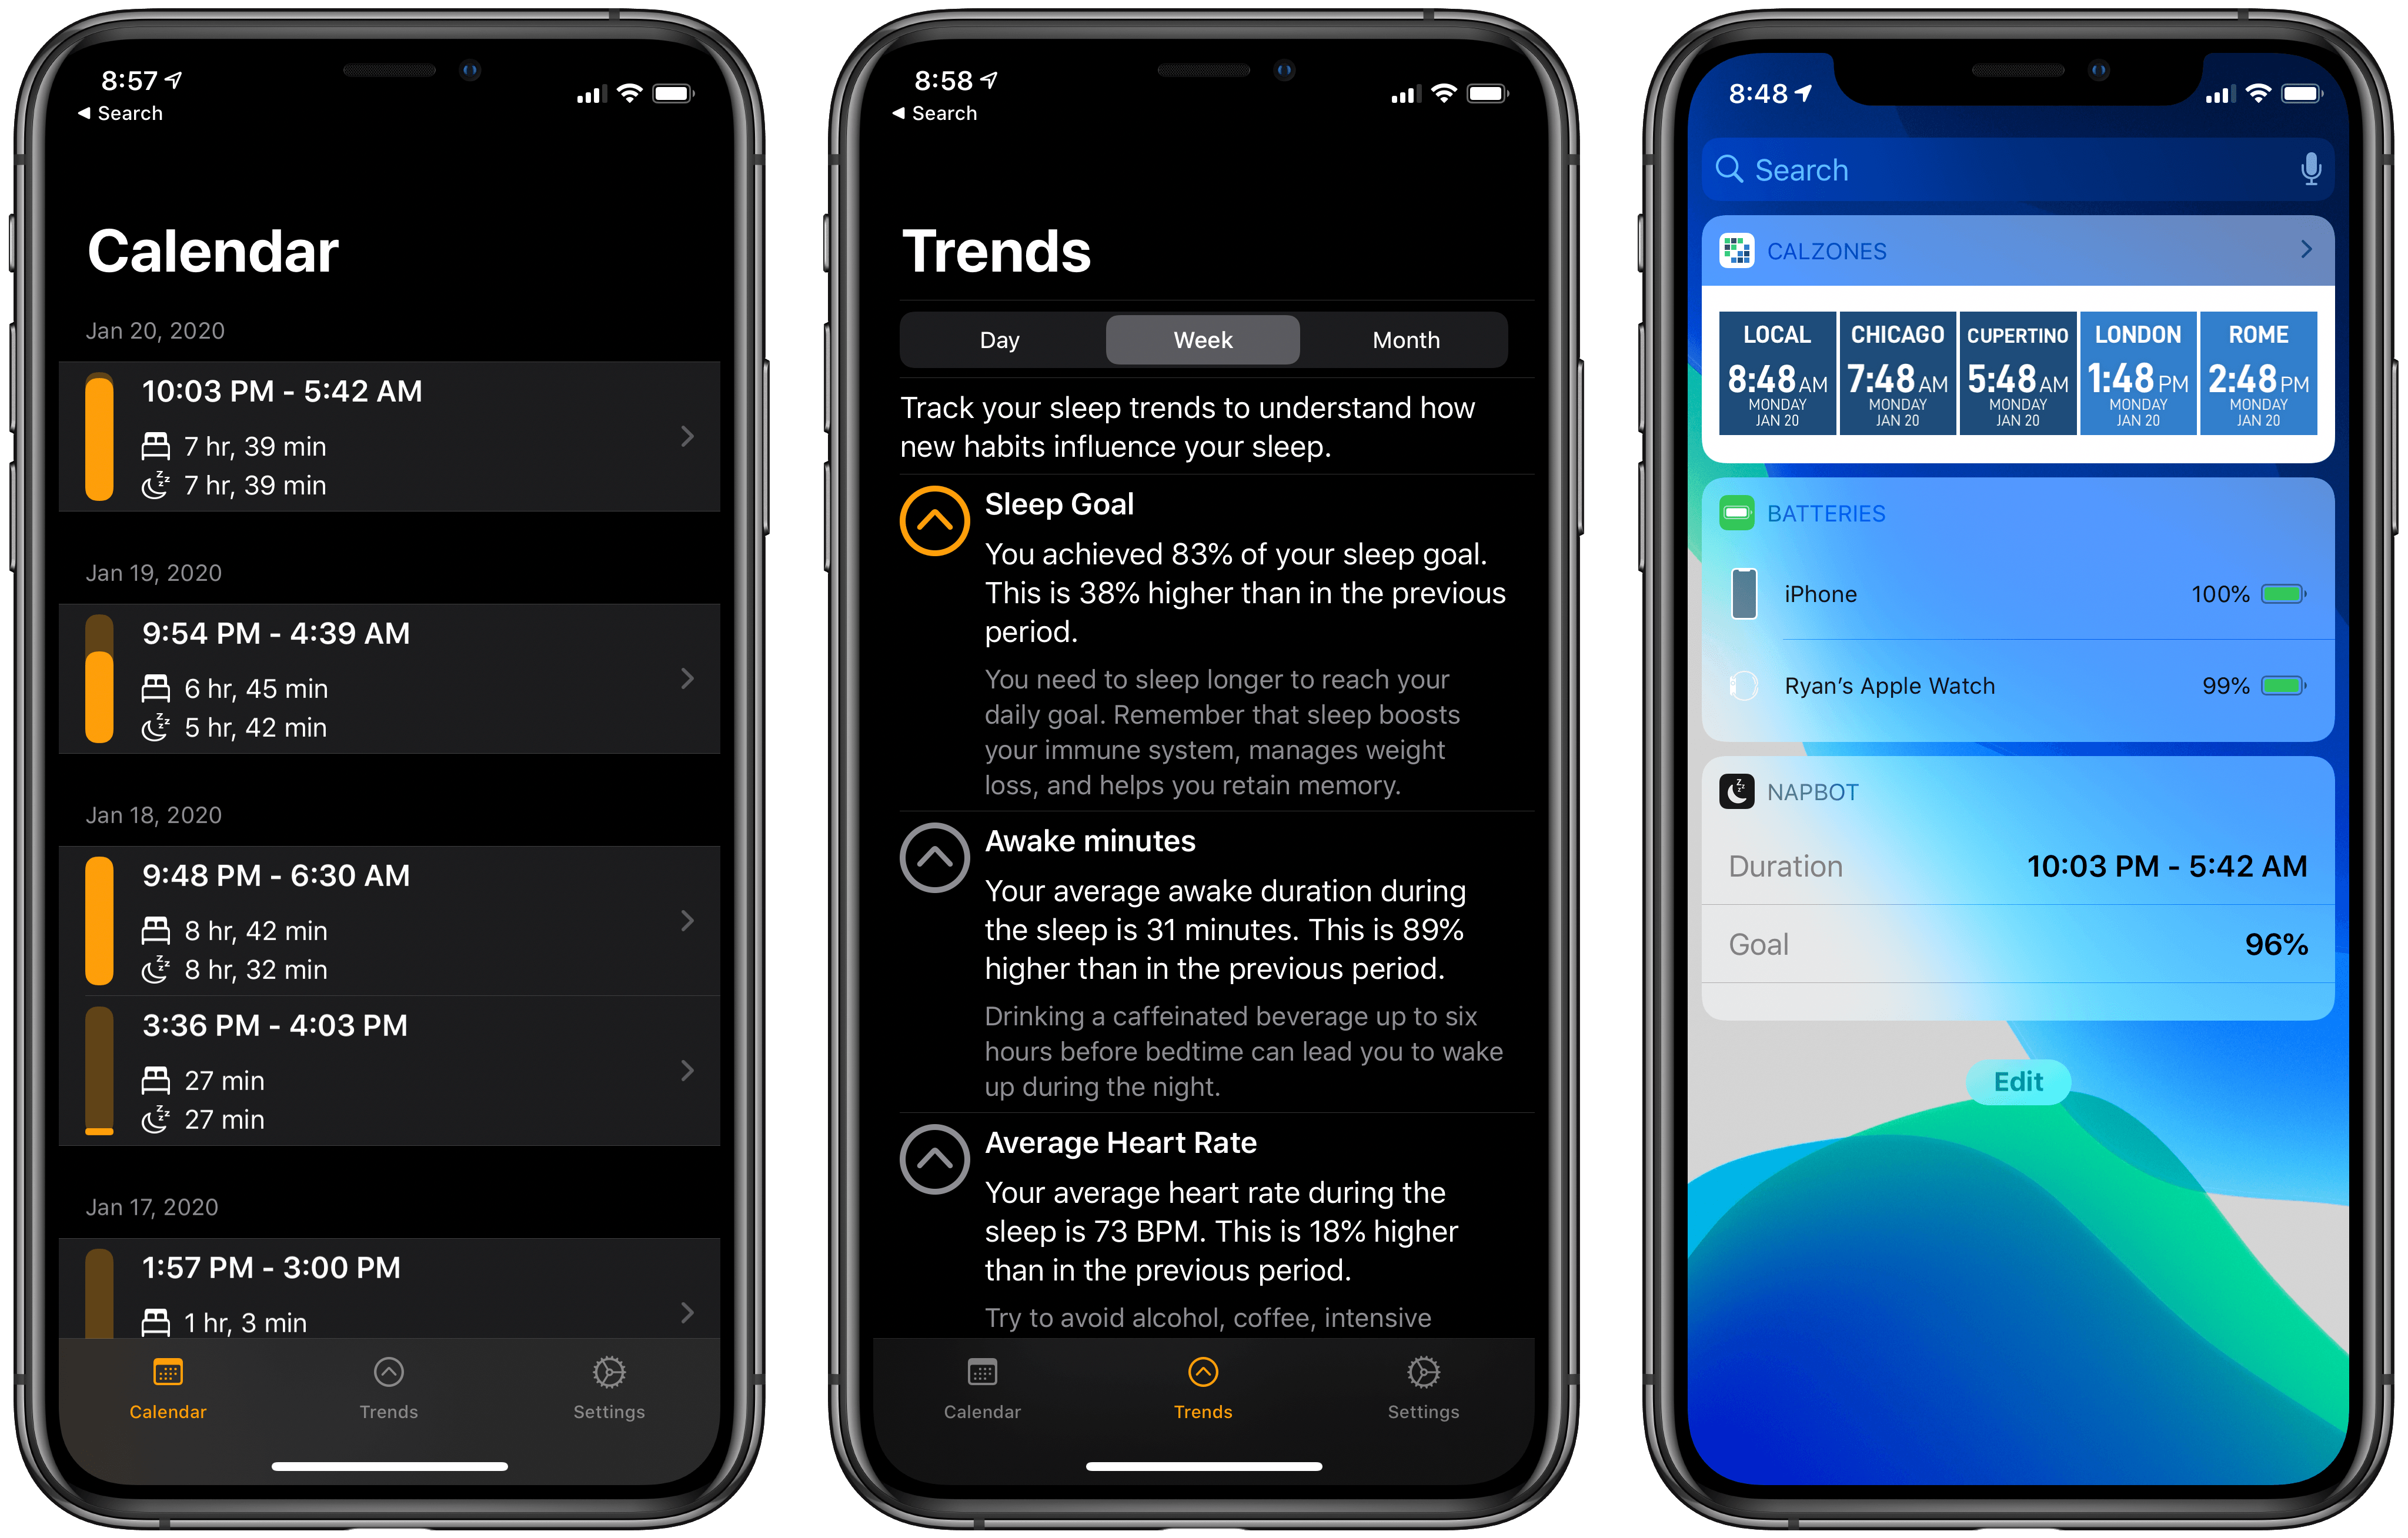 NapBot 1.3 Adds Independent Watch App, Today Widget, Notifications, and New Awake Minutes Trend